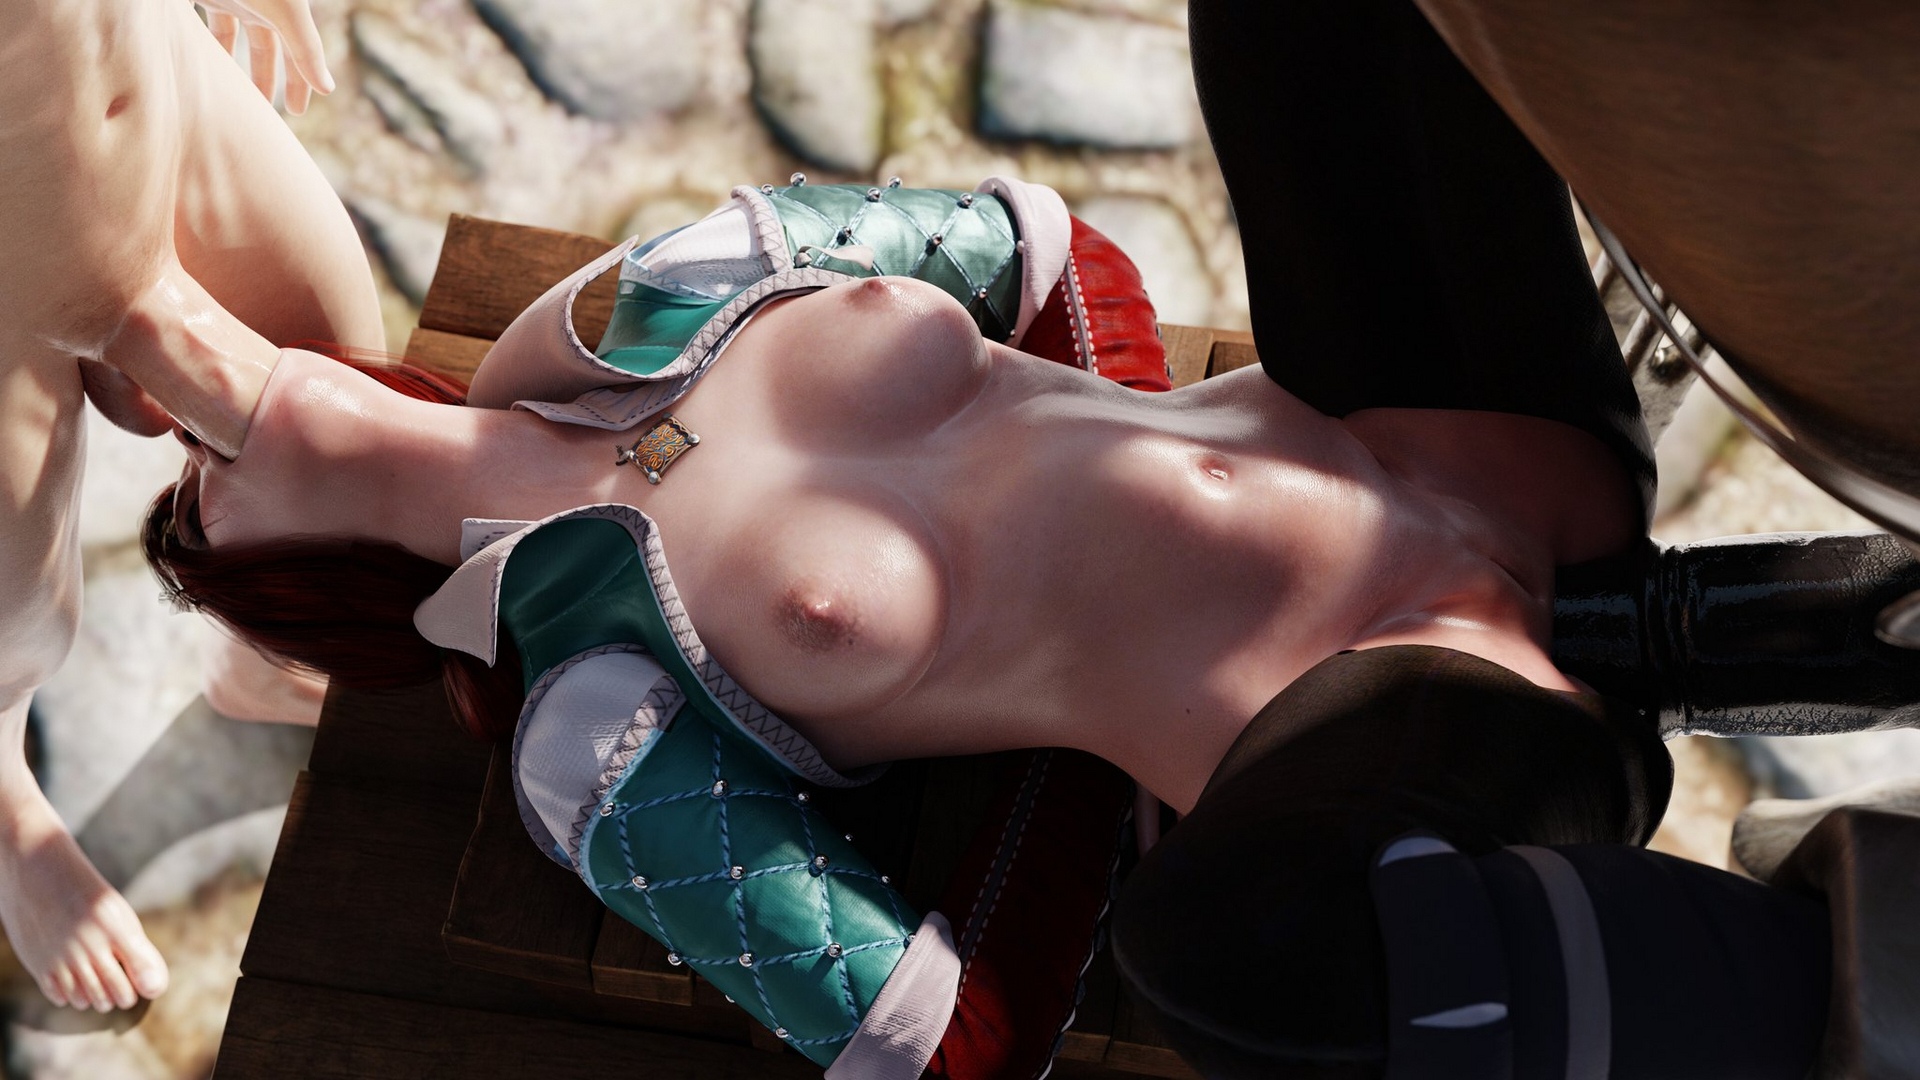 triss merigold, triss, the witcher, the witcher 3